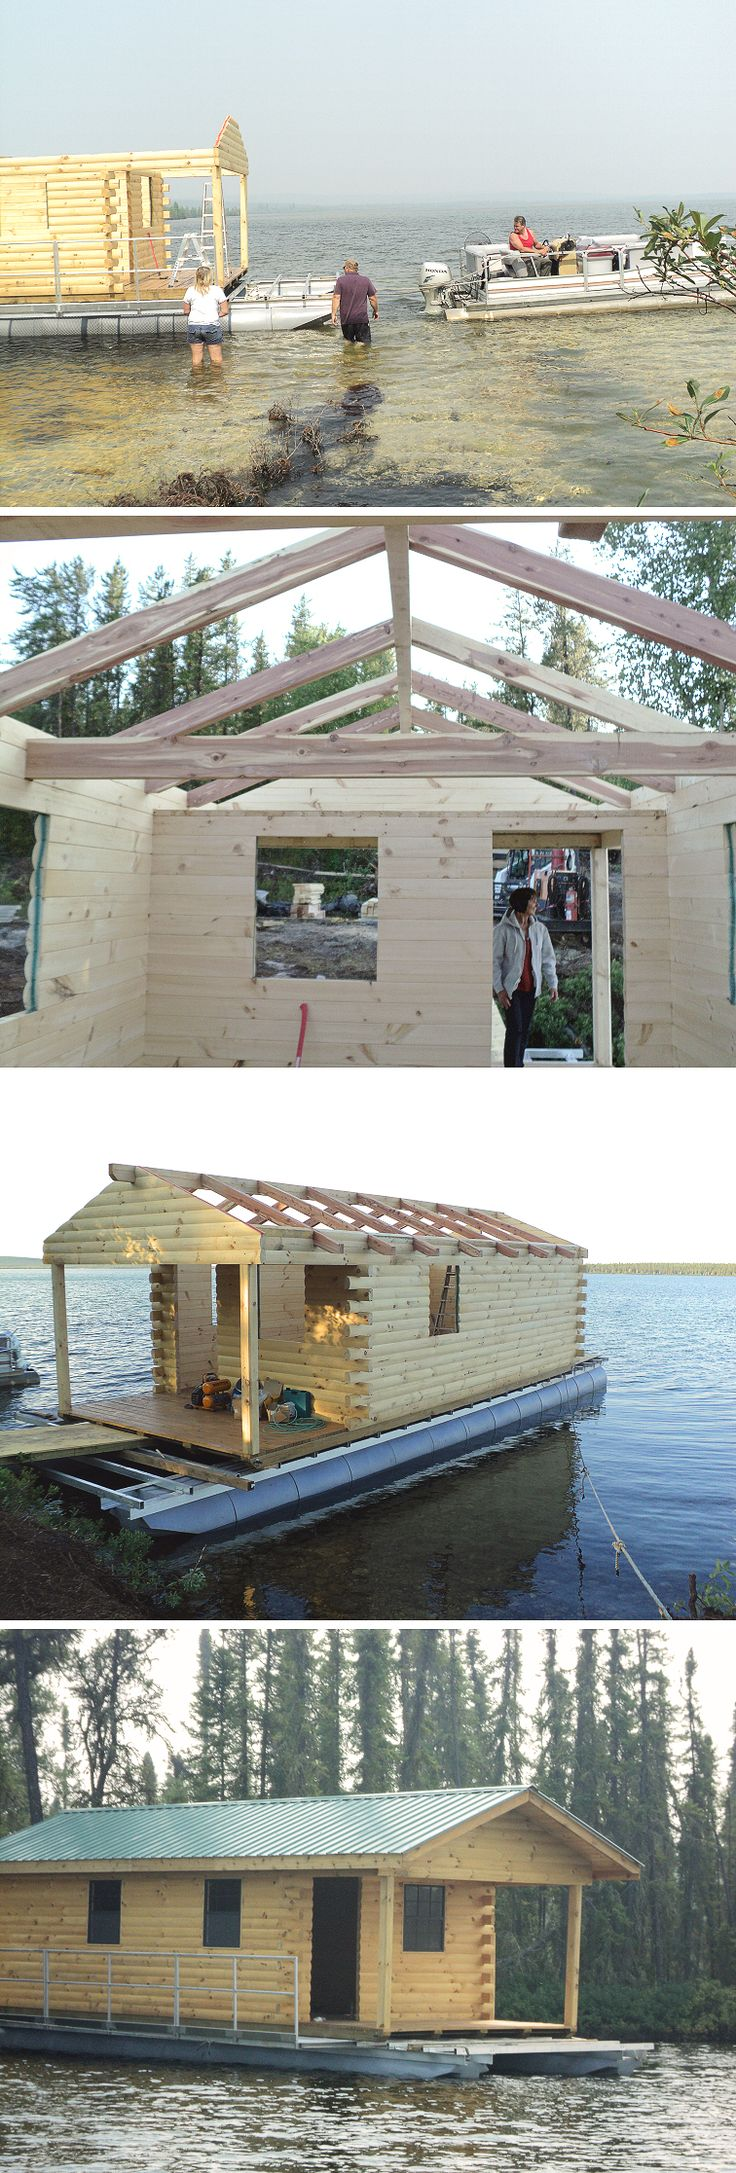 One of two 12x30 Hunter cabin kits we shipped to Bonnyville, Alberta...where they were assembled on pontoons!